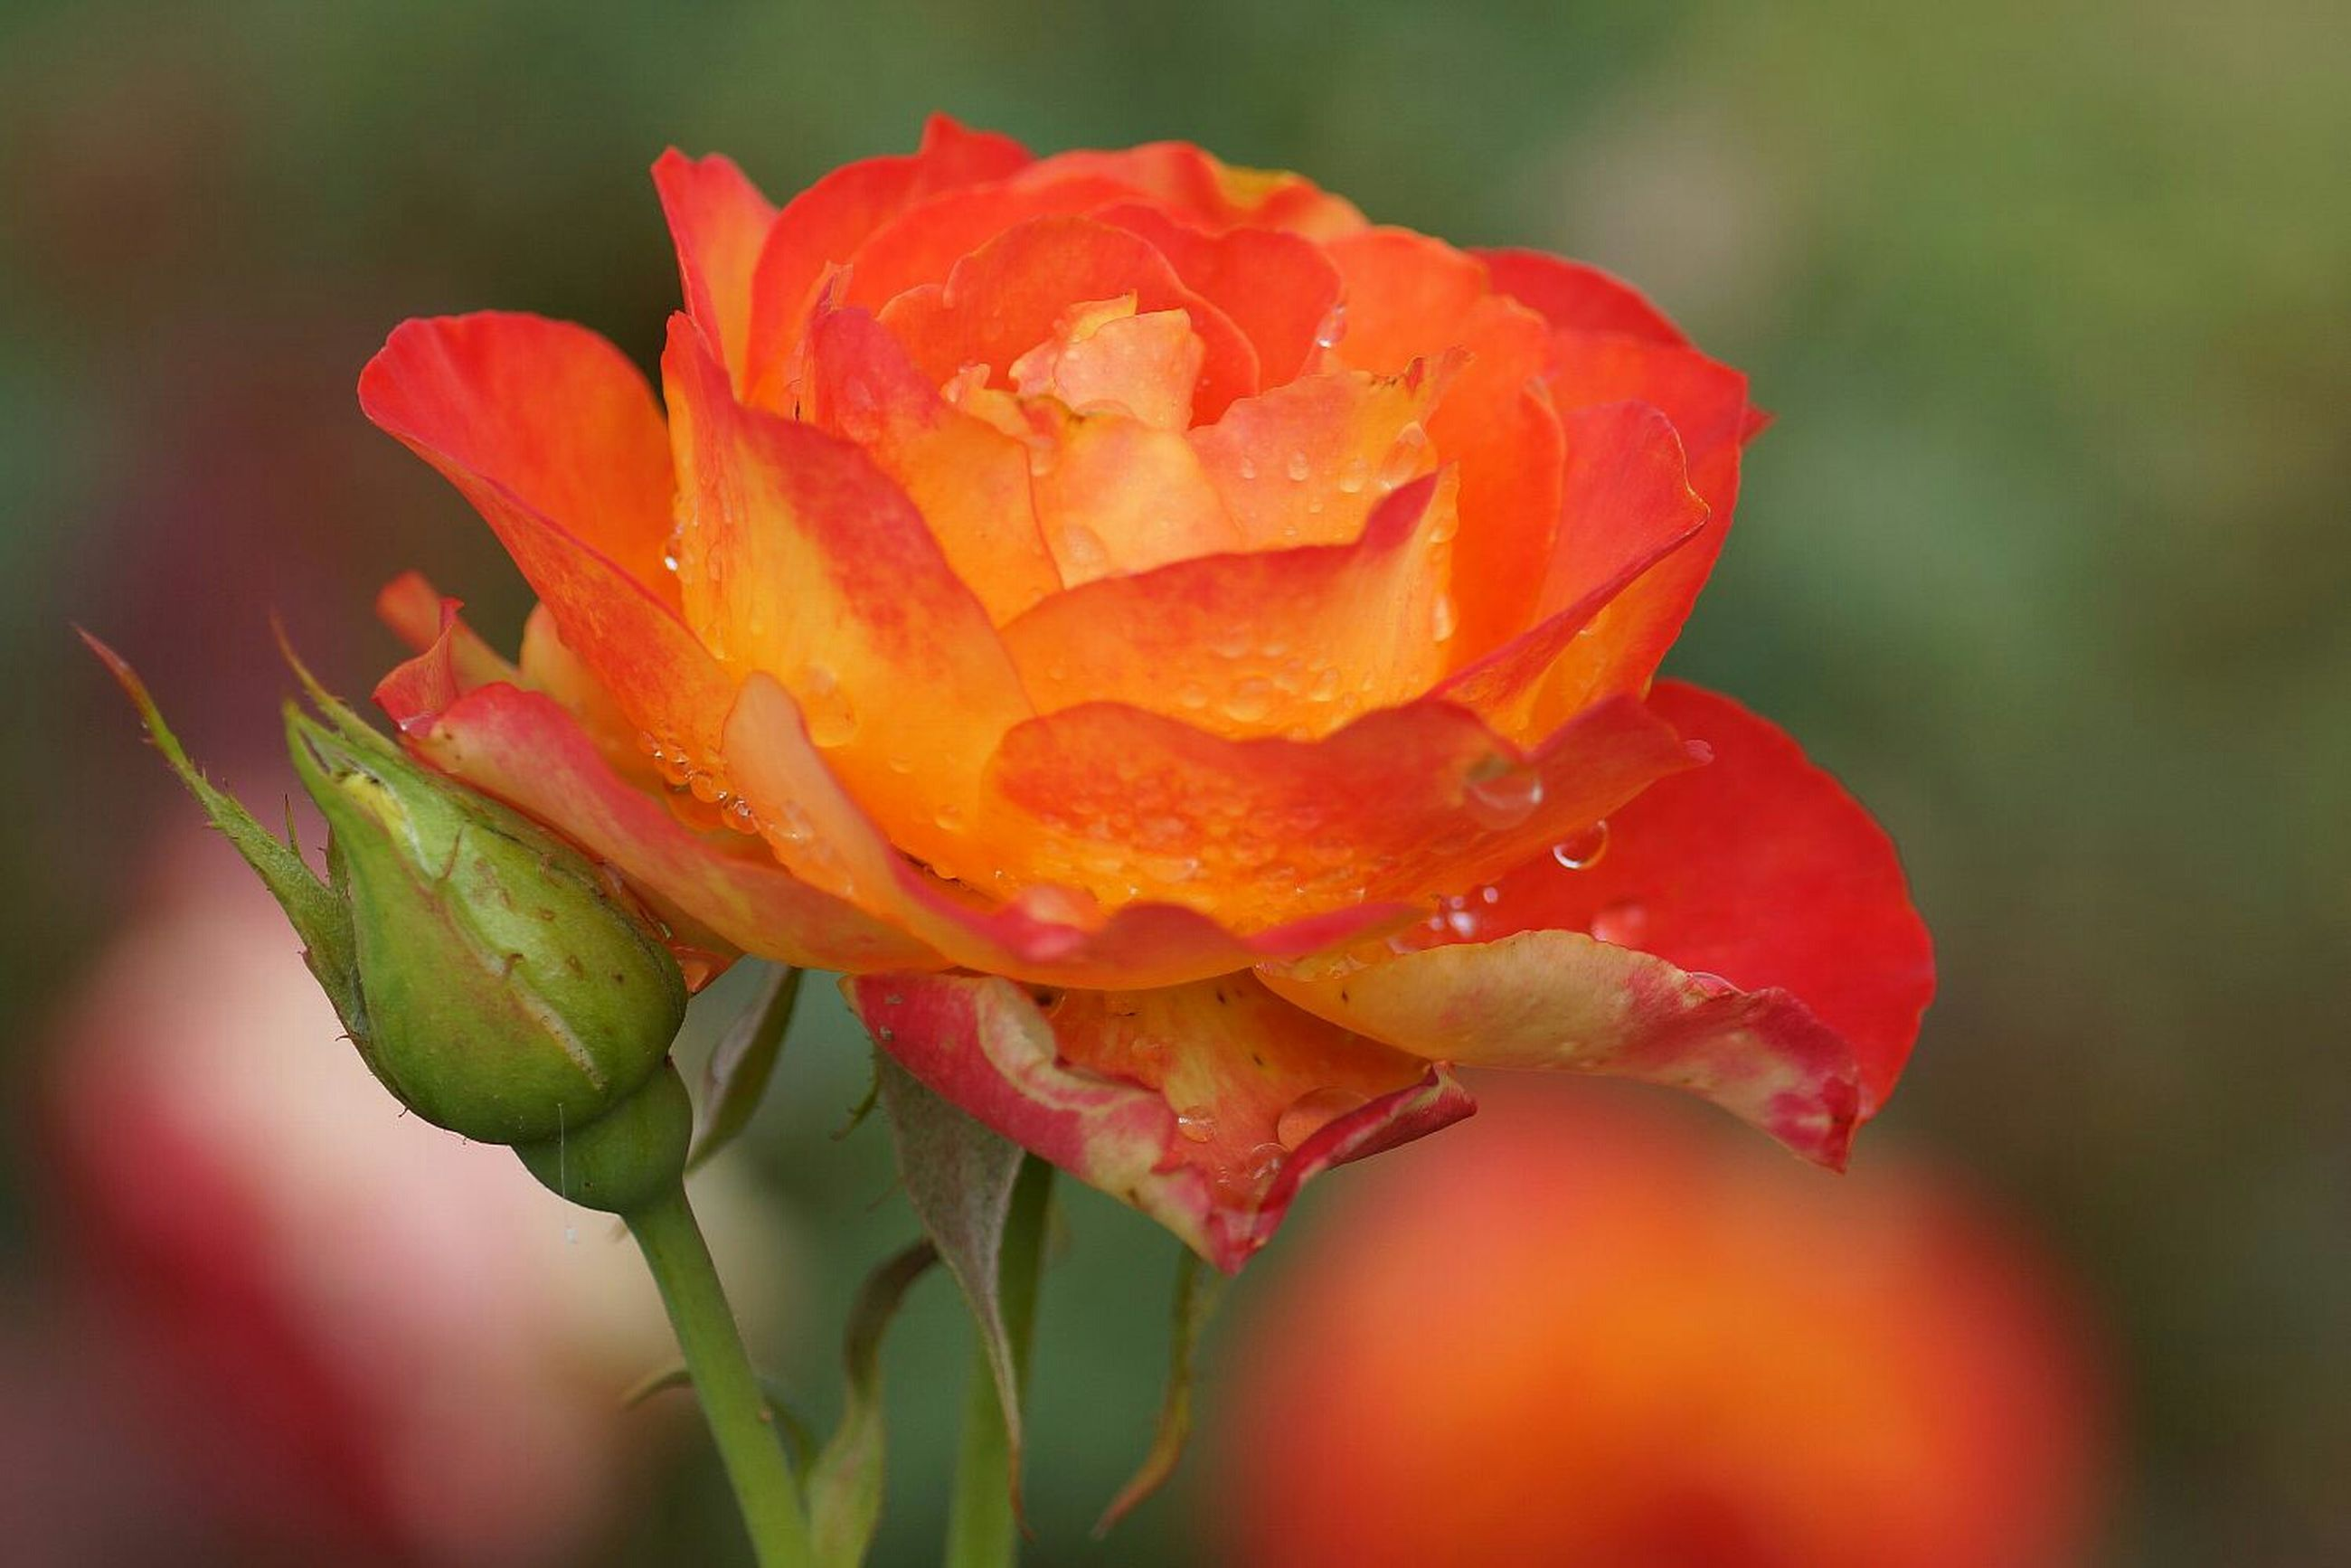 petal, flower, flower head, freshness, fragility, growth, close-up, beauty in nature, single flower, blooming, focus on foreground, rose - flower, red, nature, plant, in bloom, orange color, drop, outdoors, selective focus